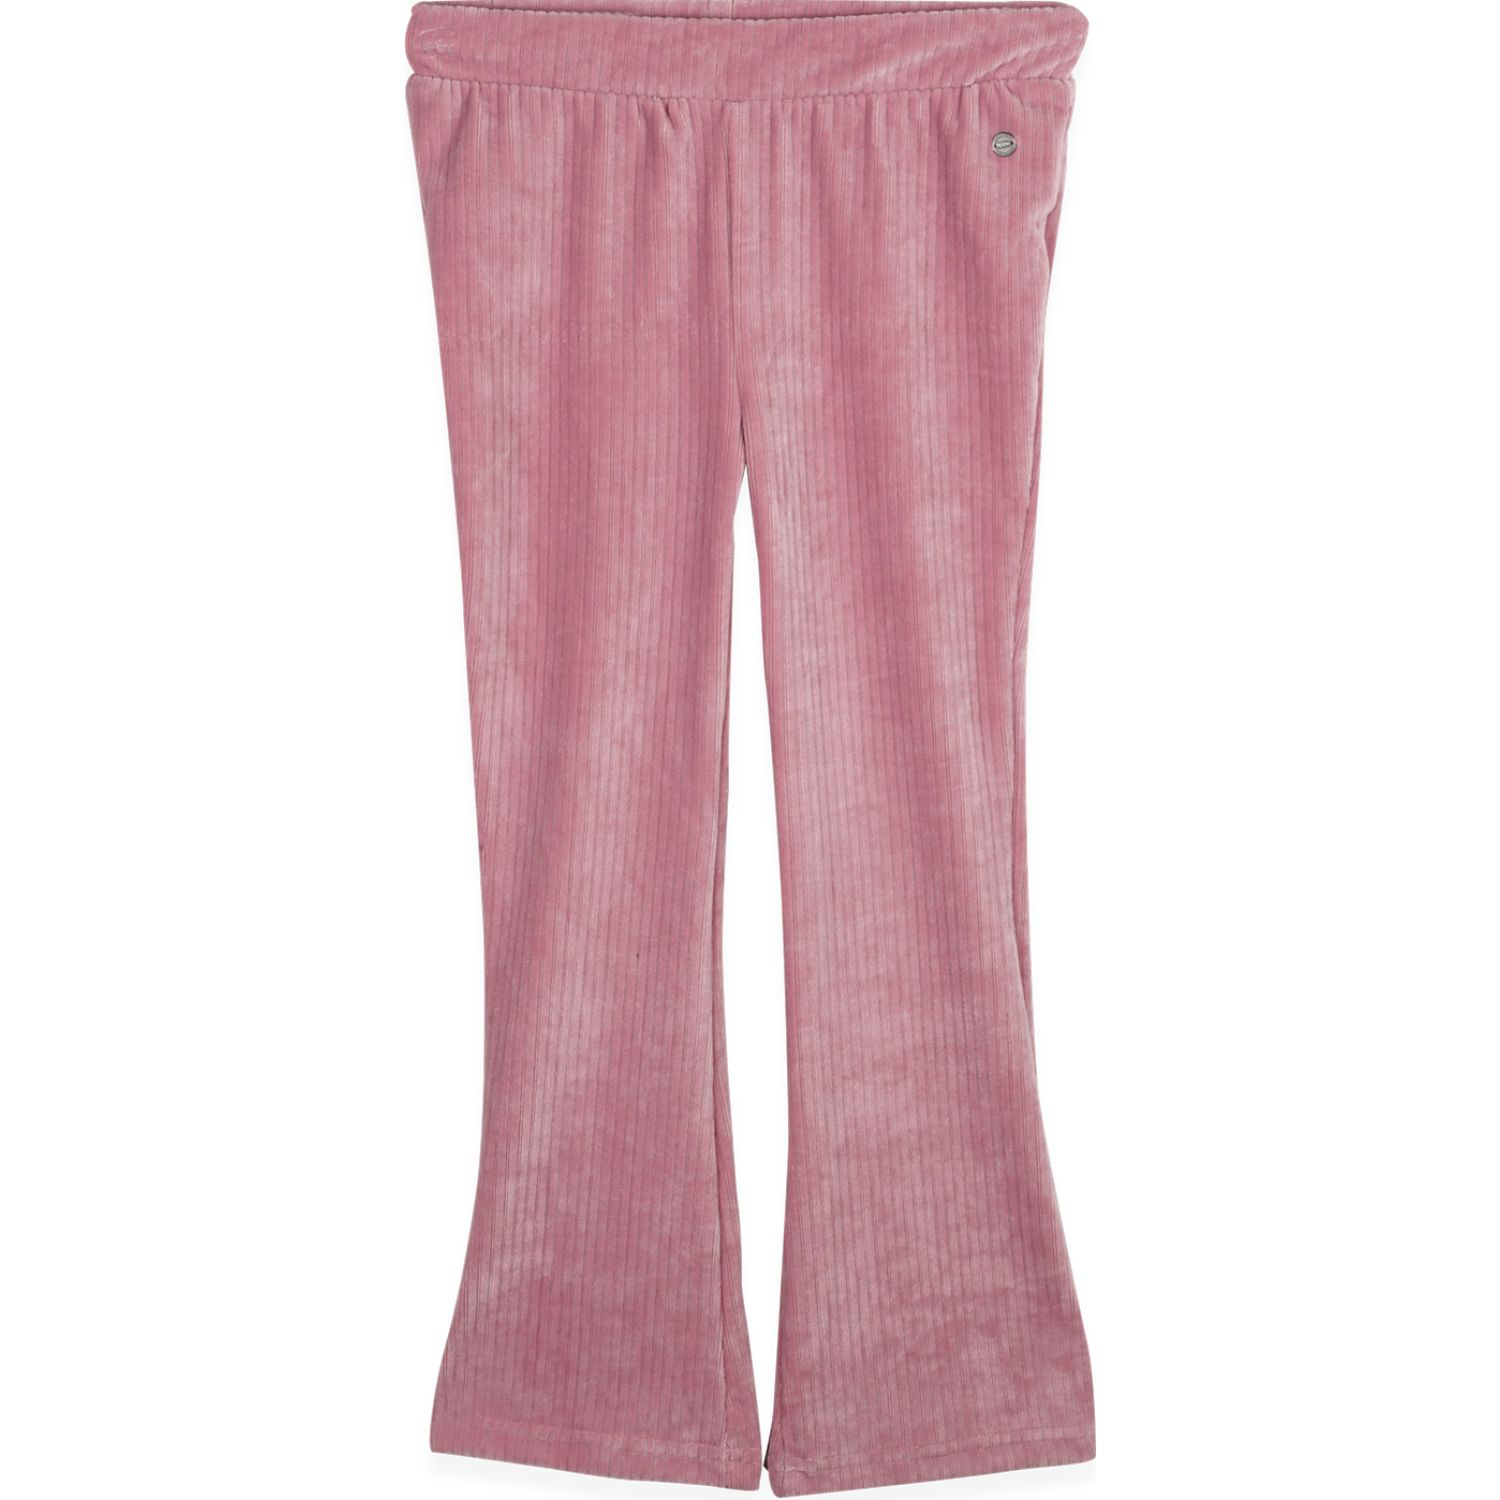 PILLIN Calza Niña Rosado Leggings